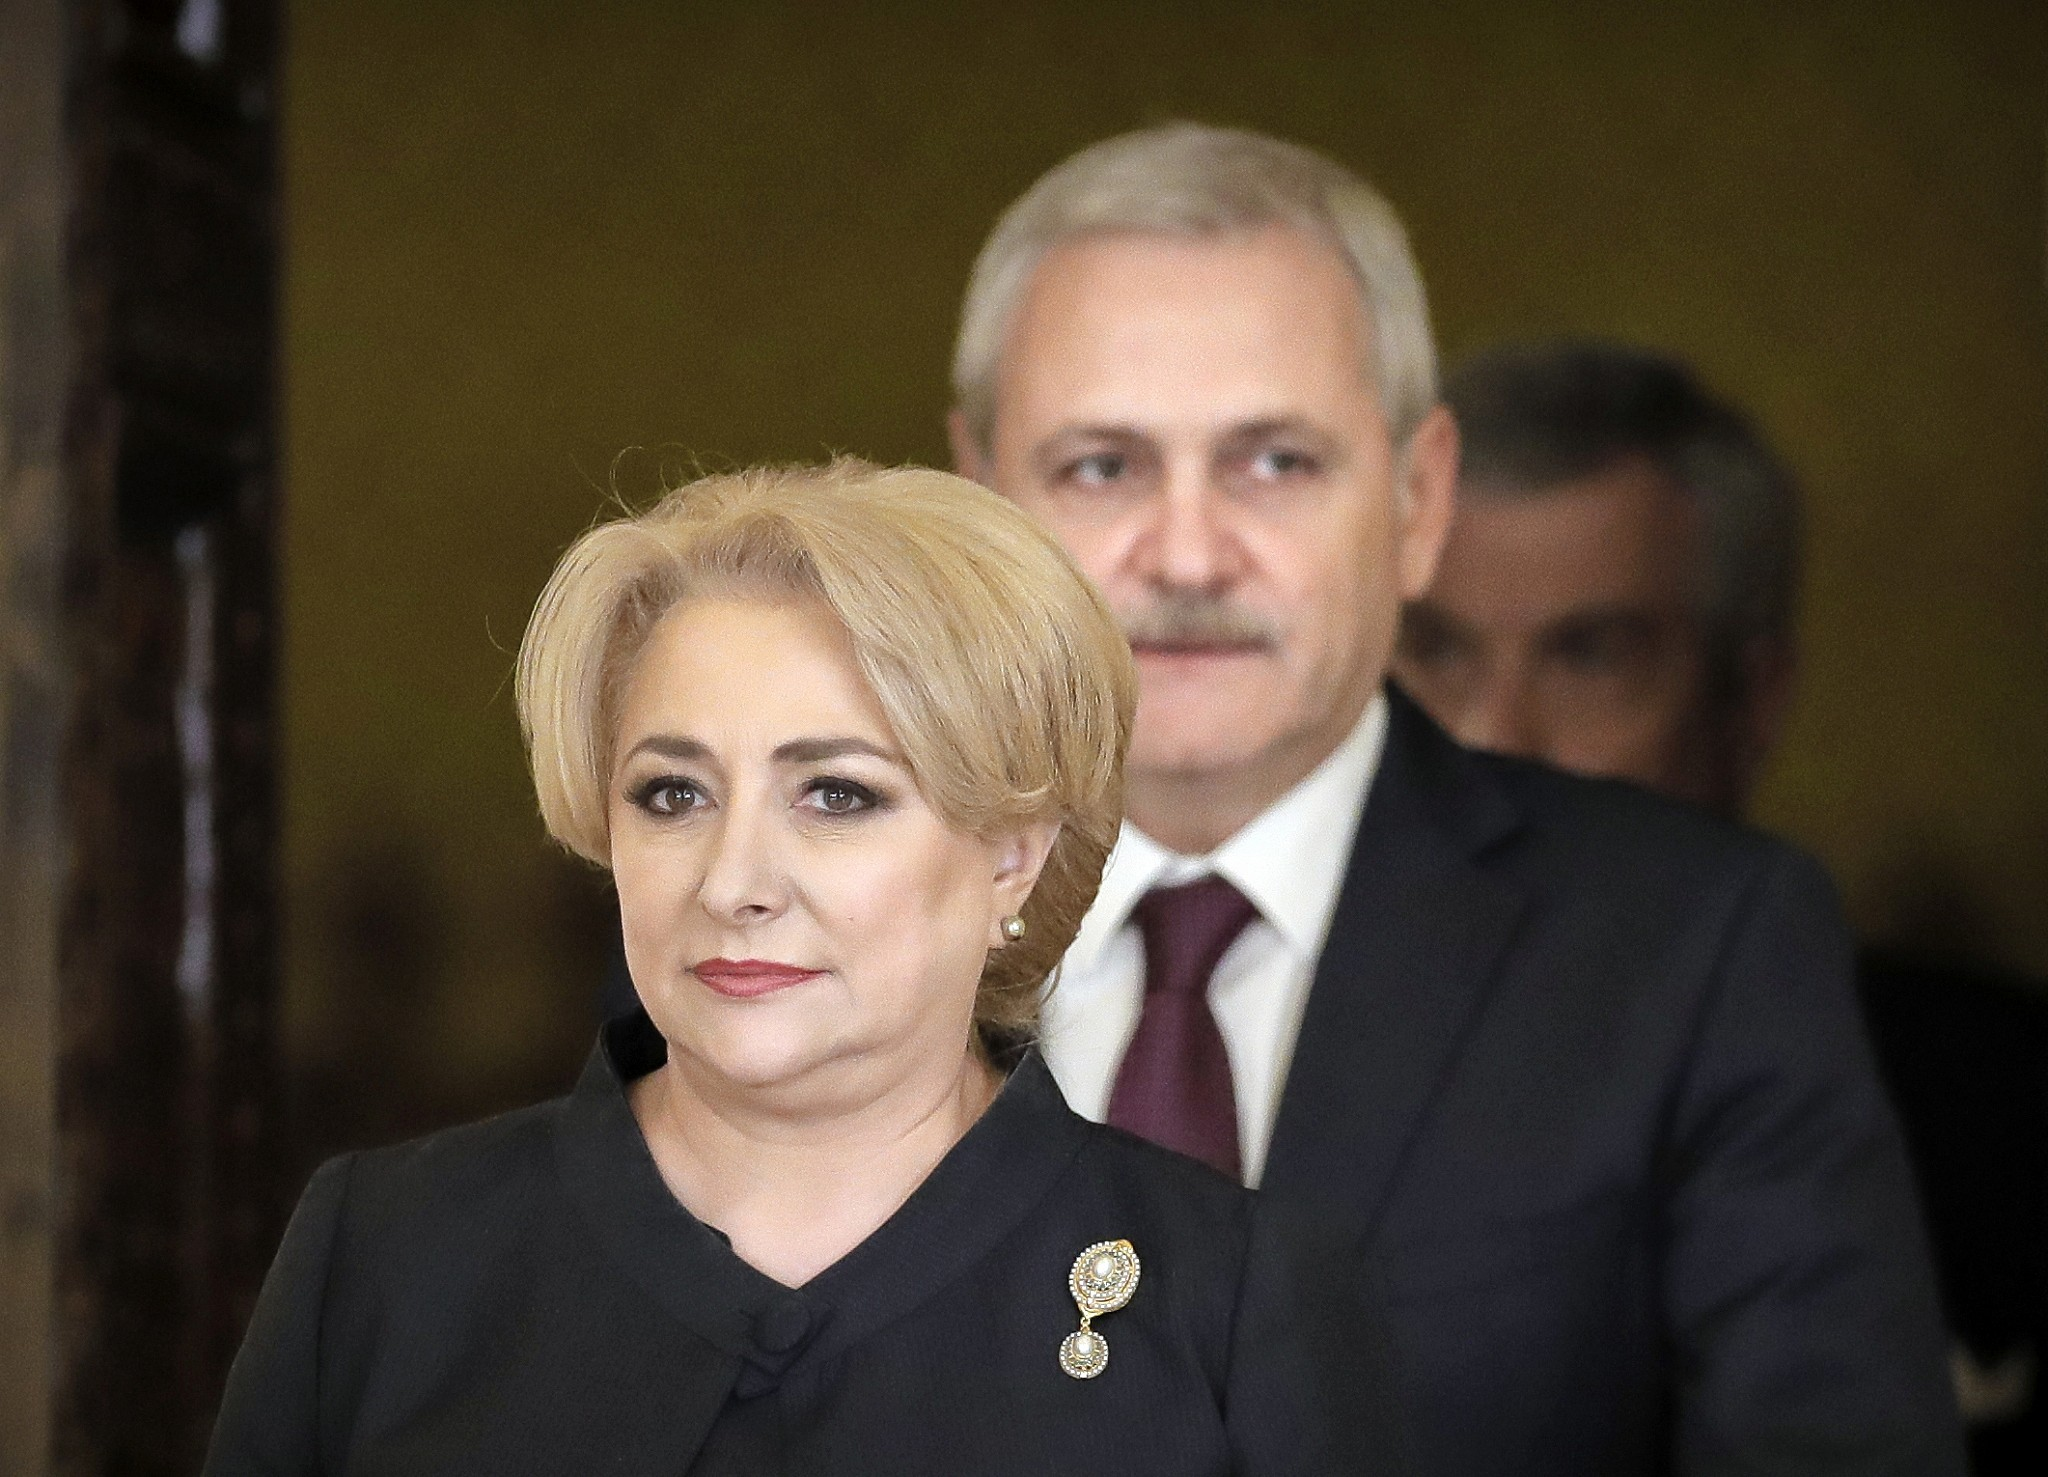 Romanian President Calls for Prime Minister to Resign From Post